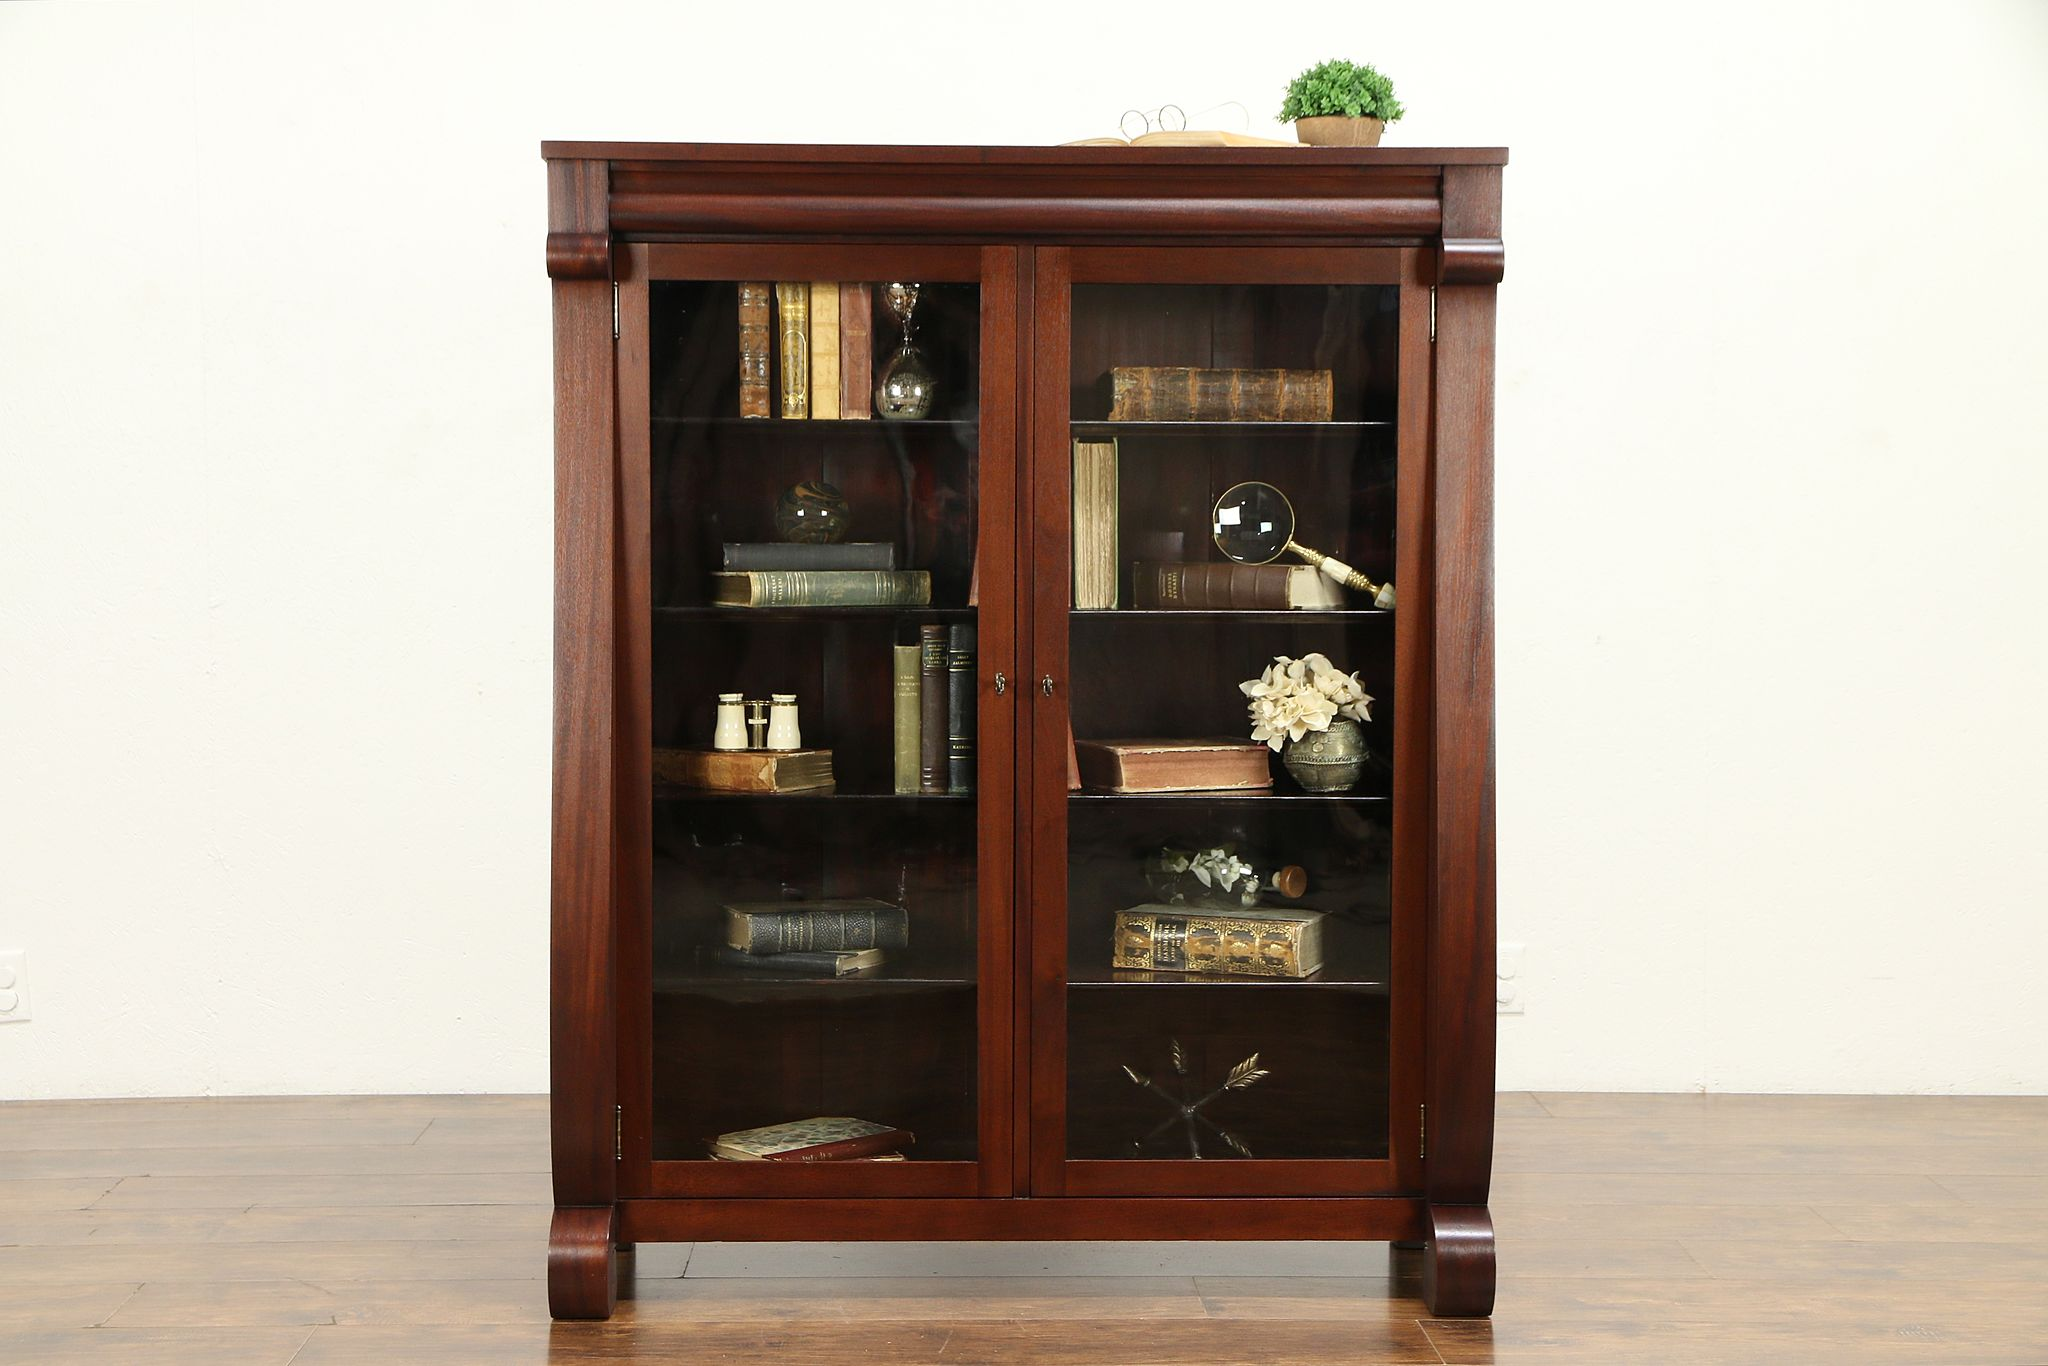 Sold Empire Antique Mahogany Library Bookcase Wavy Glass Doors 32198 Harp Gallery Antiques Furniture